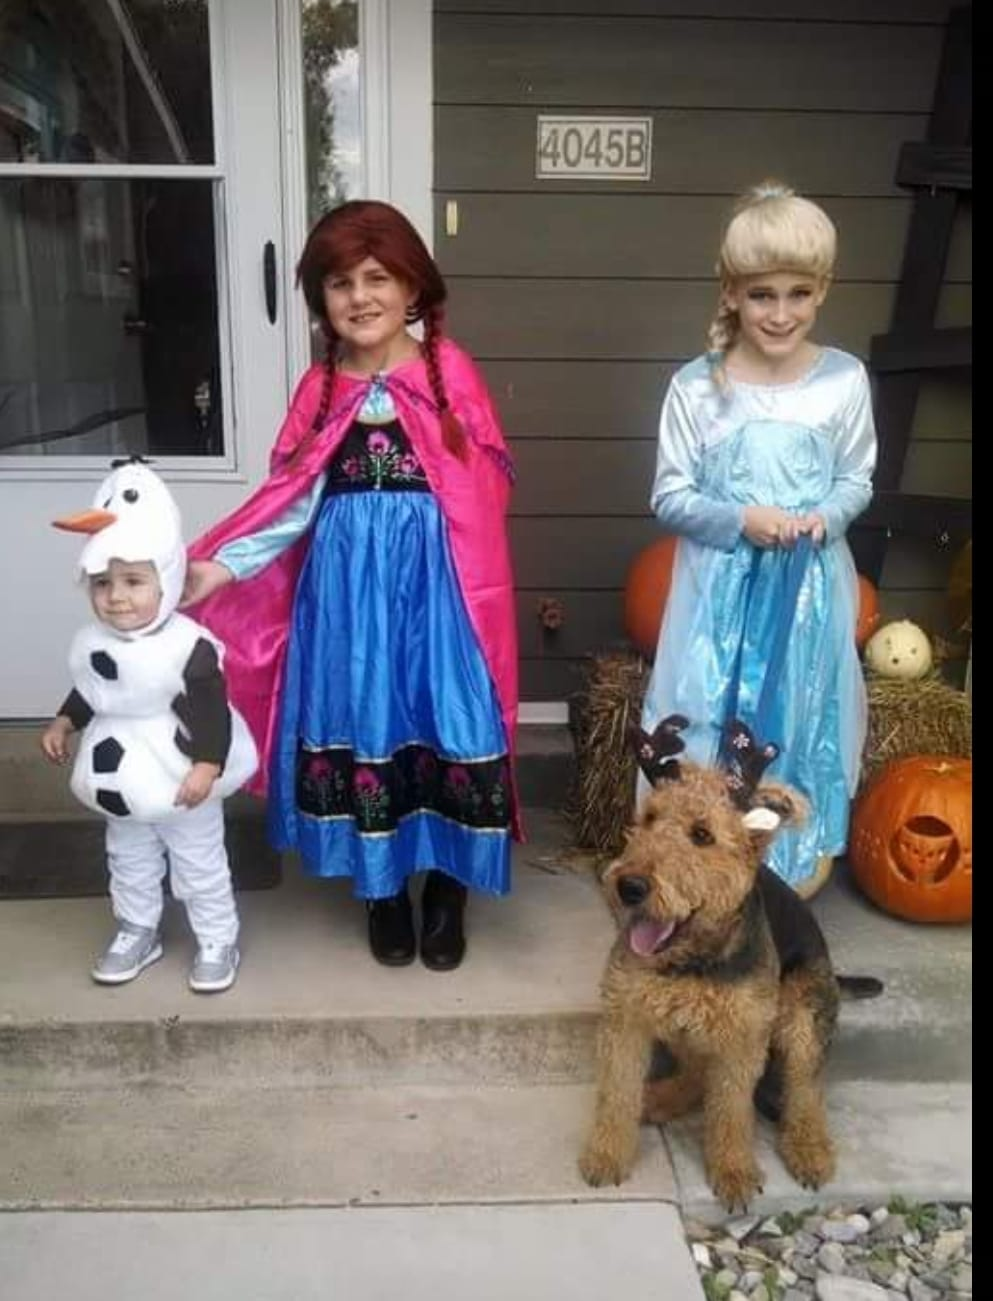 100 Super Creative Diy Family Halloween Costumes To Try This Year